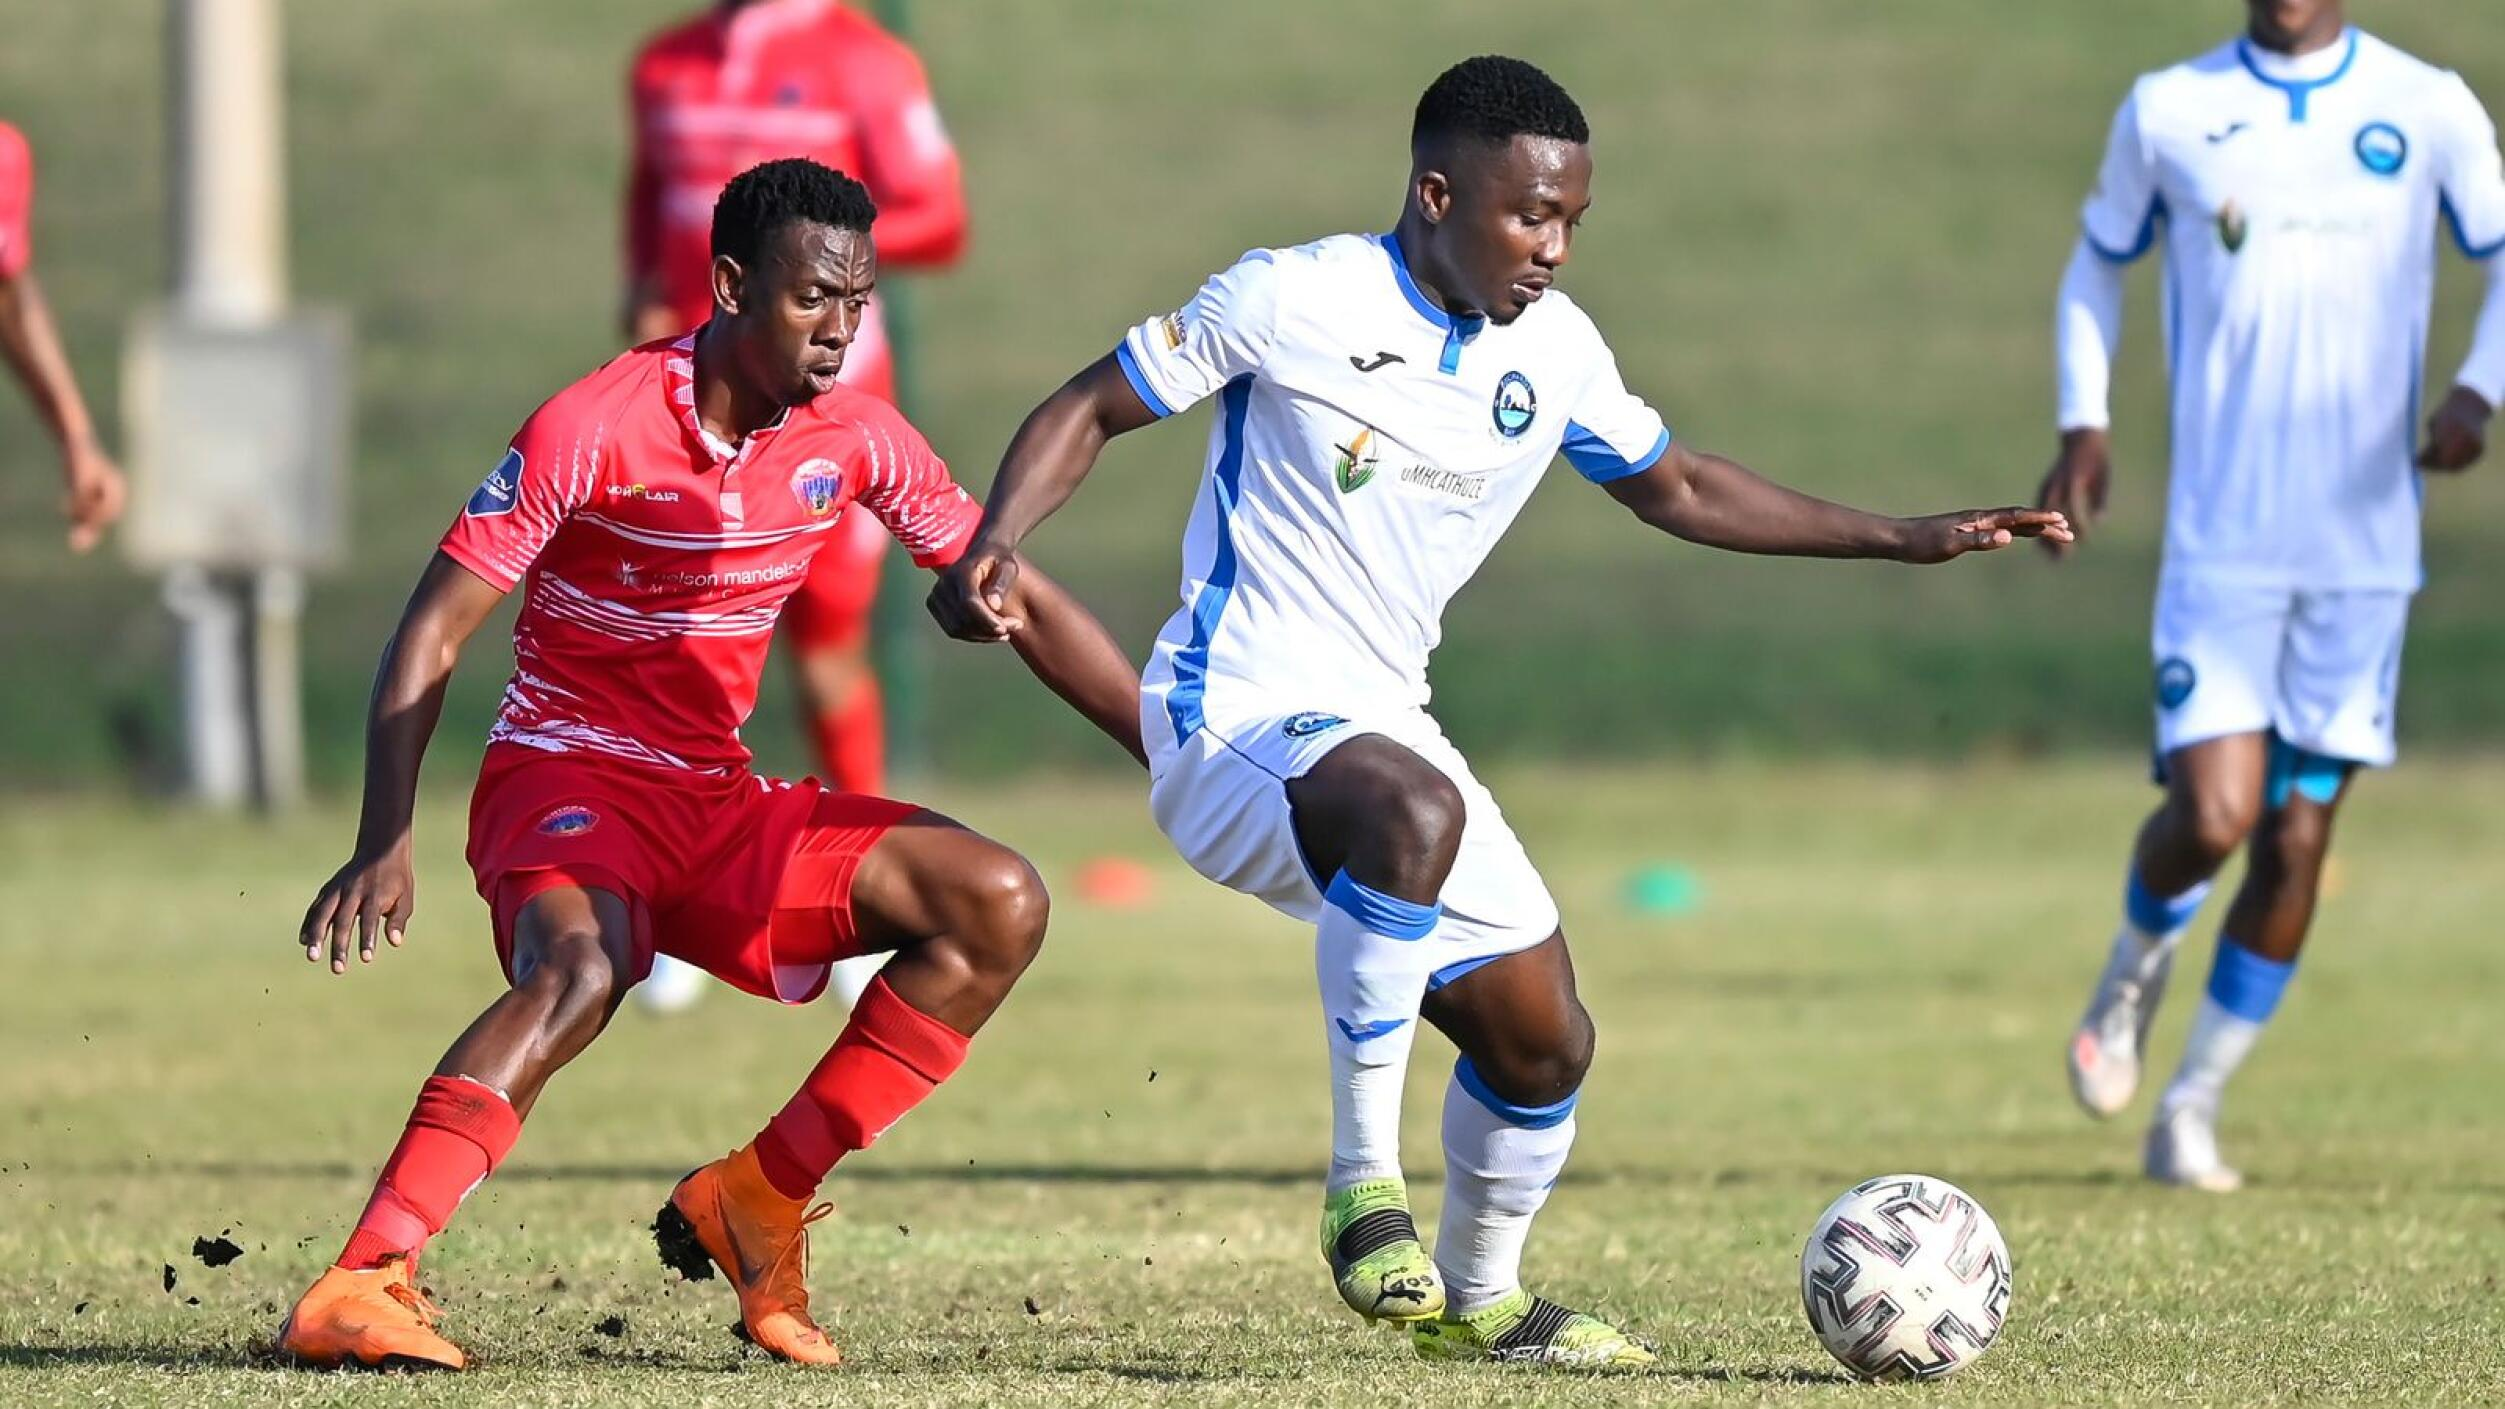 Maloisane Mokhele of Chippa United F.C. challenges Victor Bakah of Richards Bay FC during their relegation/promotion playoff game at Richards Bay Stadium on Saturday